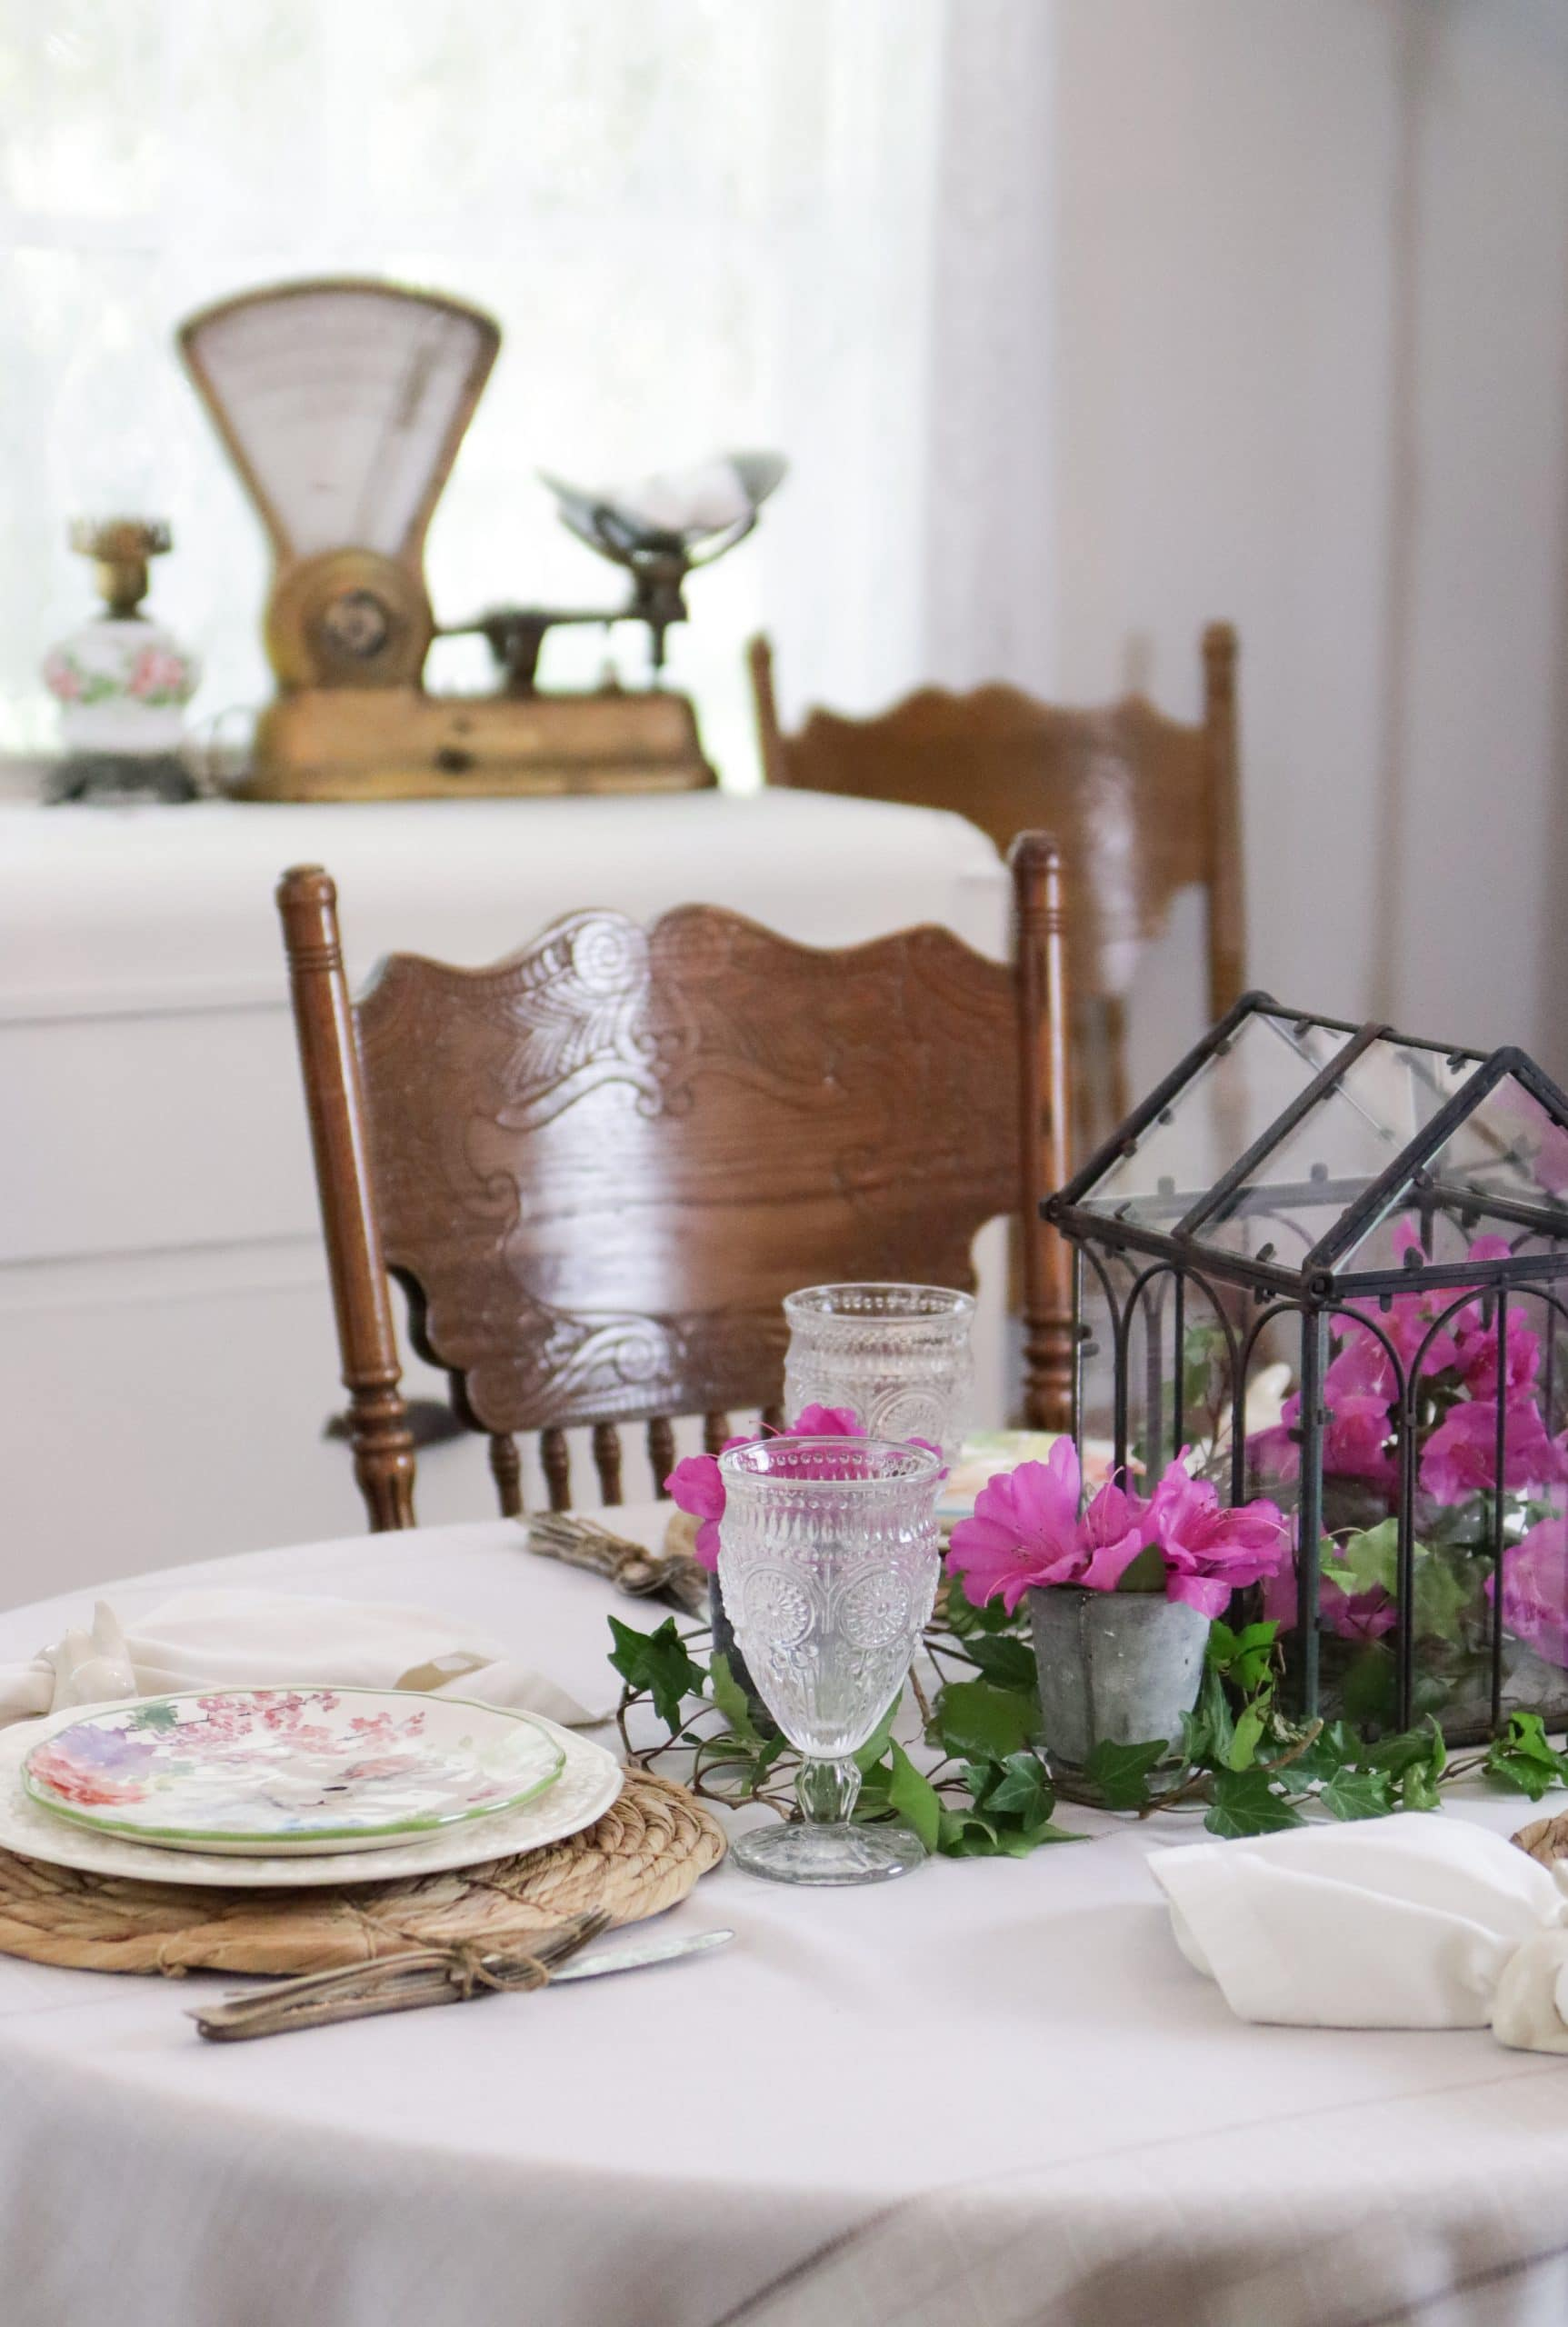 spring table setting with sideboard and old scale in background.